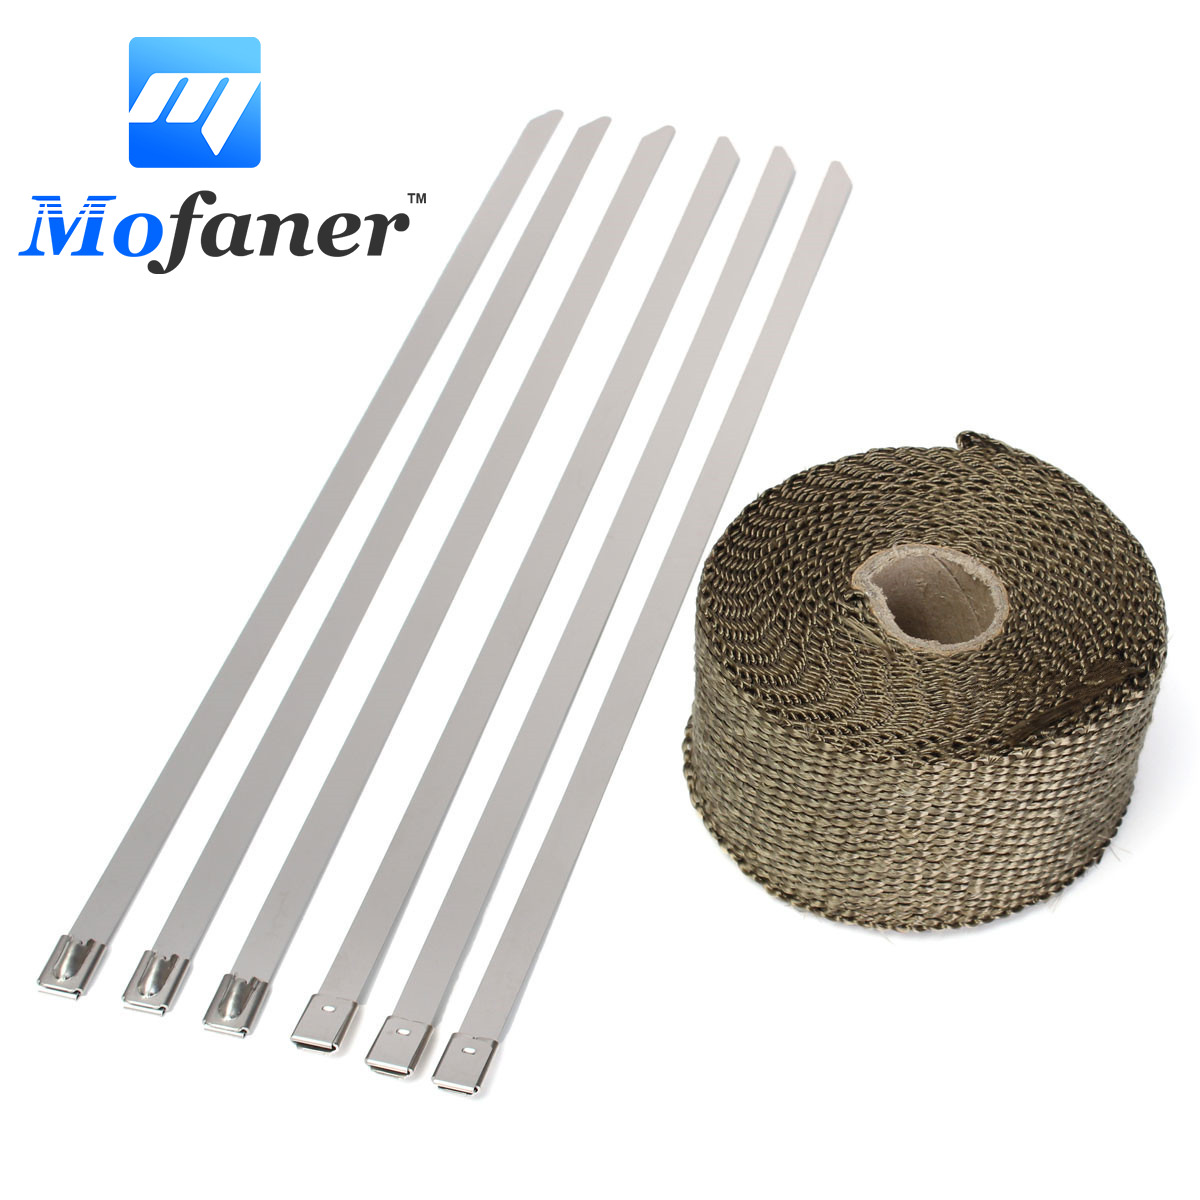 5M Titanium Motorcycle Exhaust Heat Wrap Roll Cable Exhaust Heat Insulation Pipe Tape With 6 Stainless Ties 10pcs stainless steel metal cable ties tie zip wrap exhaust heat straps induction pipe